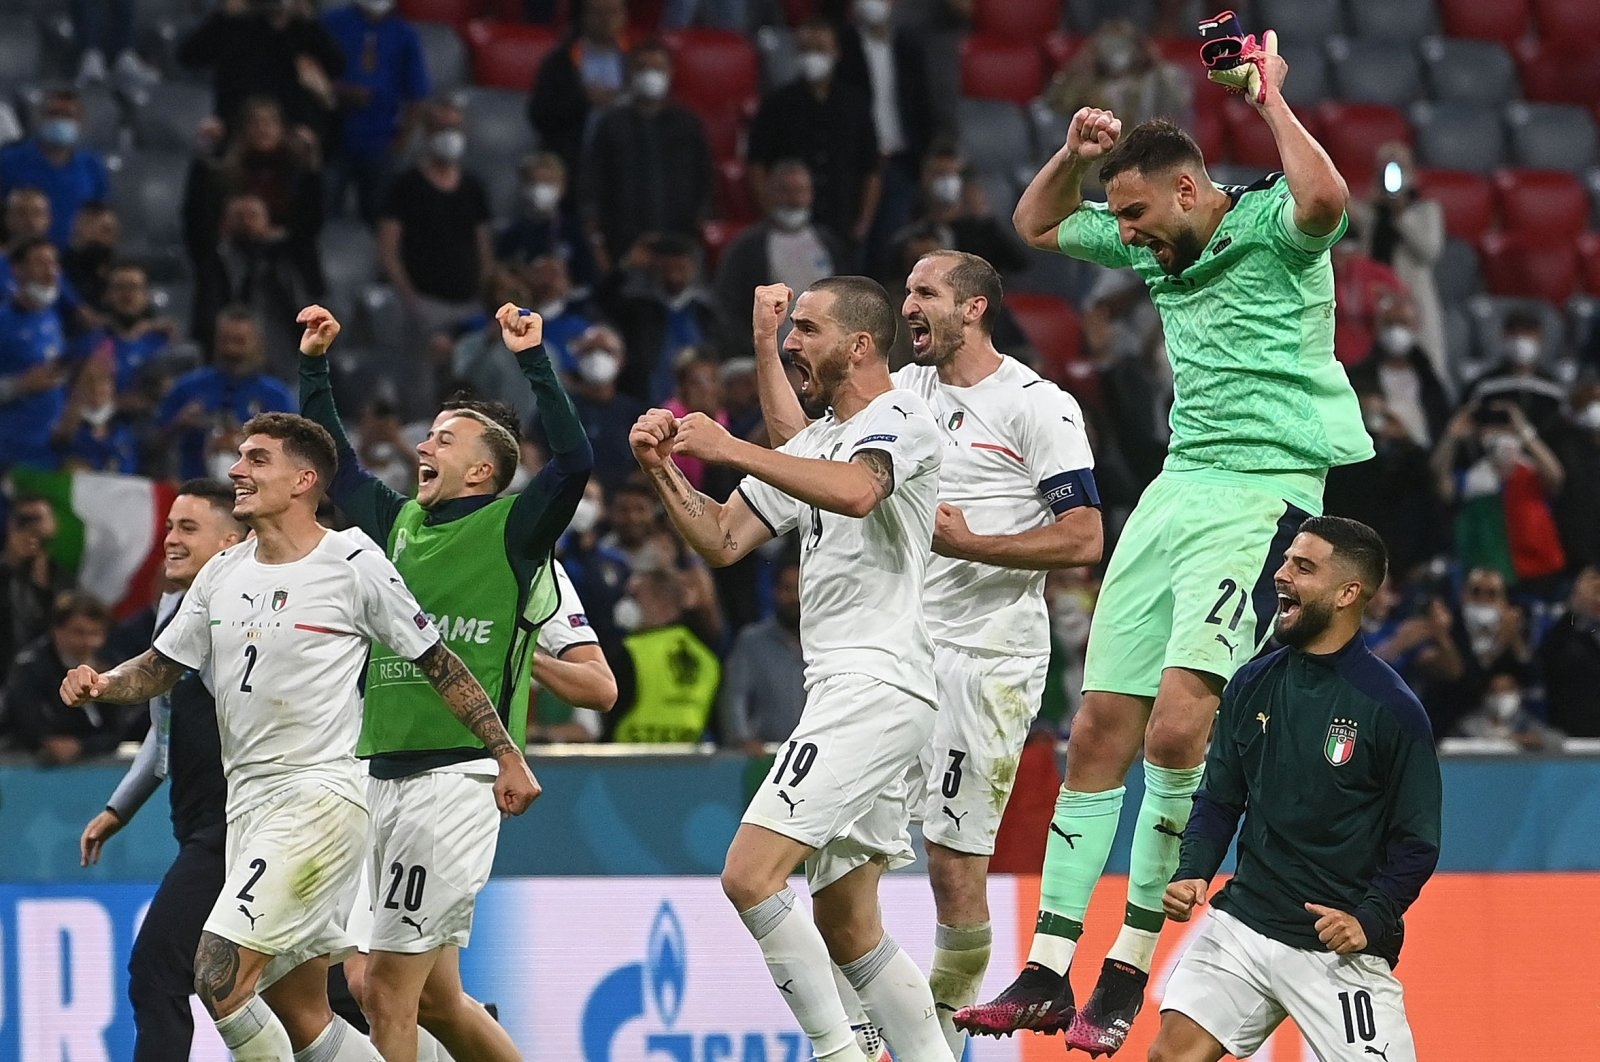 Italy's players celebrate victory after the UEFA Euro 2020 quarter-final football match between Belgium and Italy at the Allianz Arena in Munich, Germany, July 2, 2021. (AFP Photo)